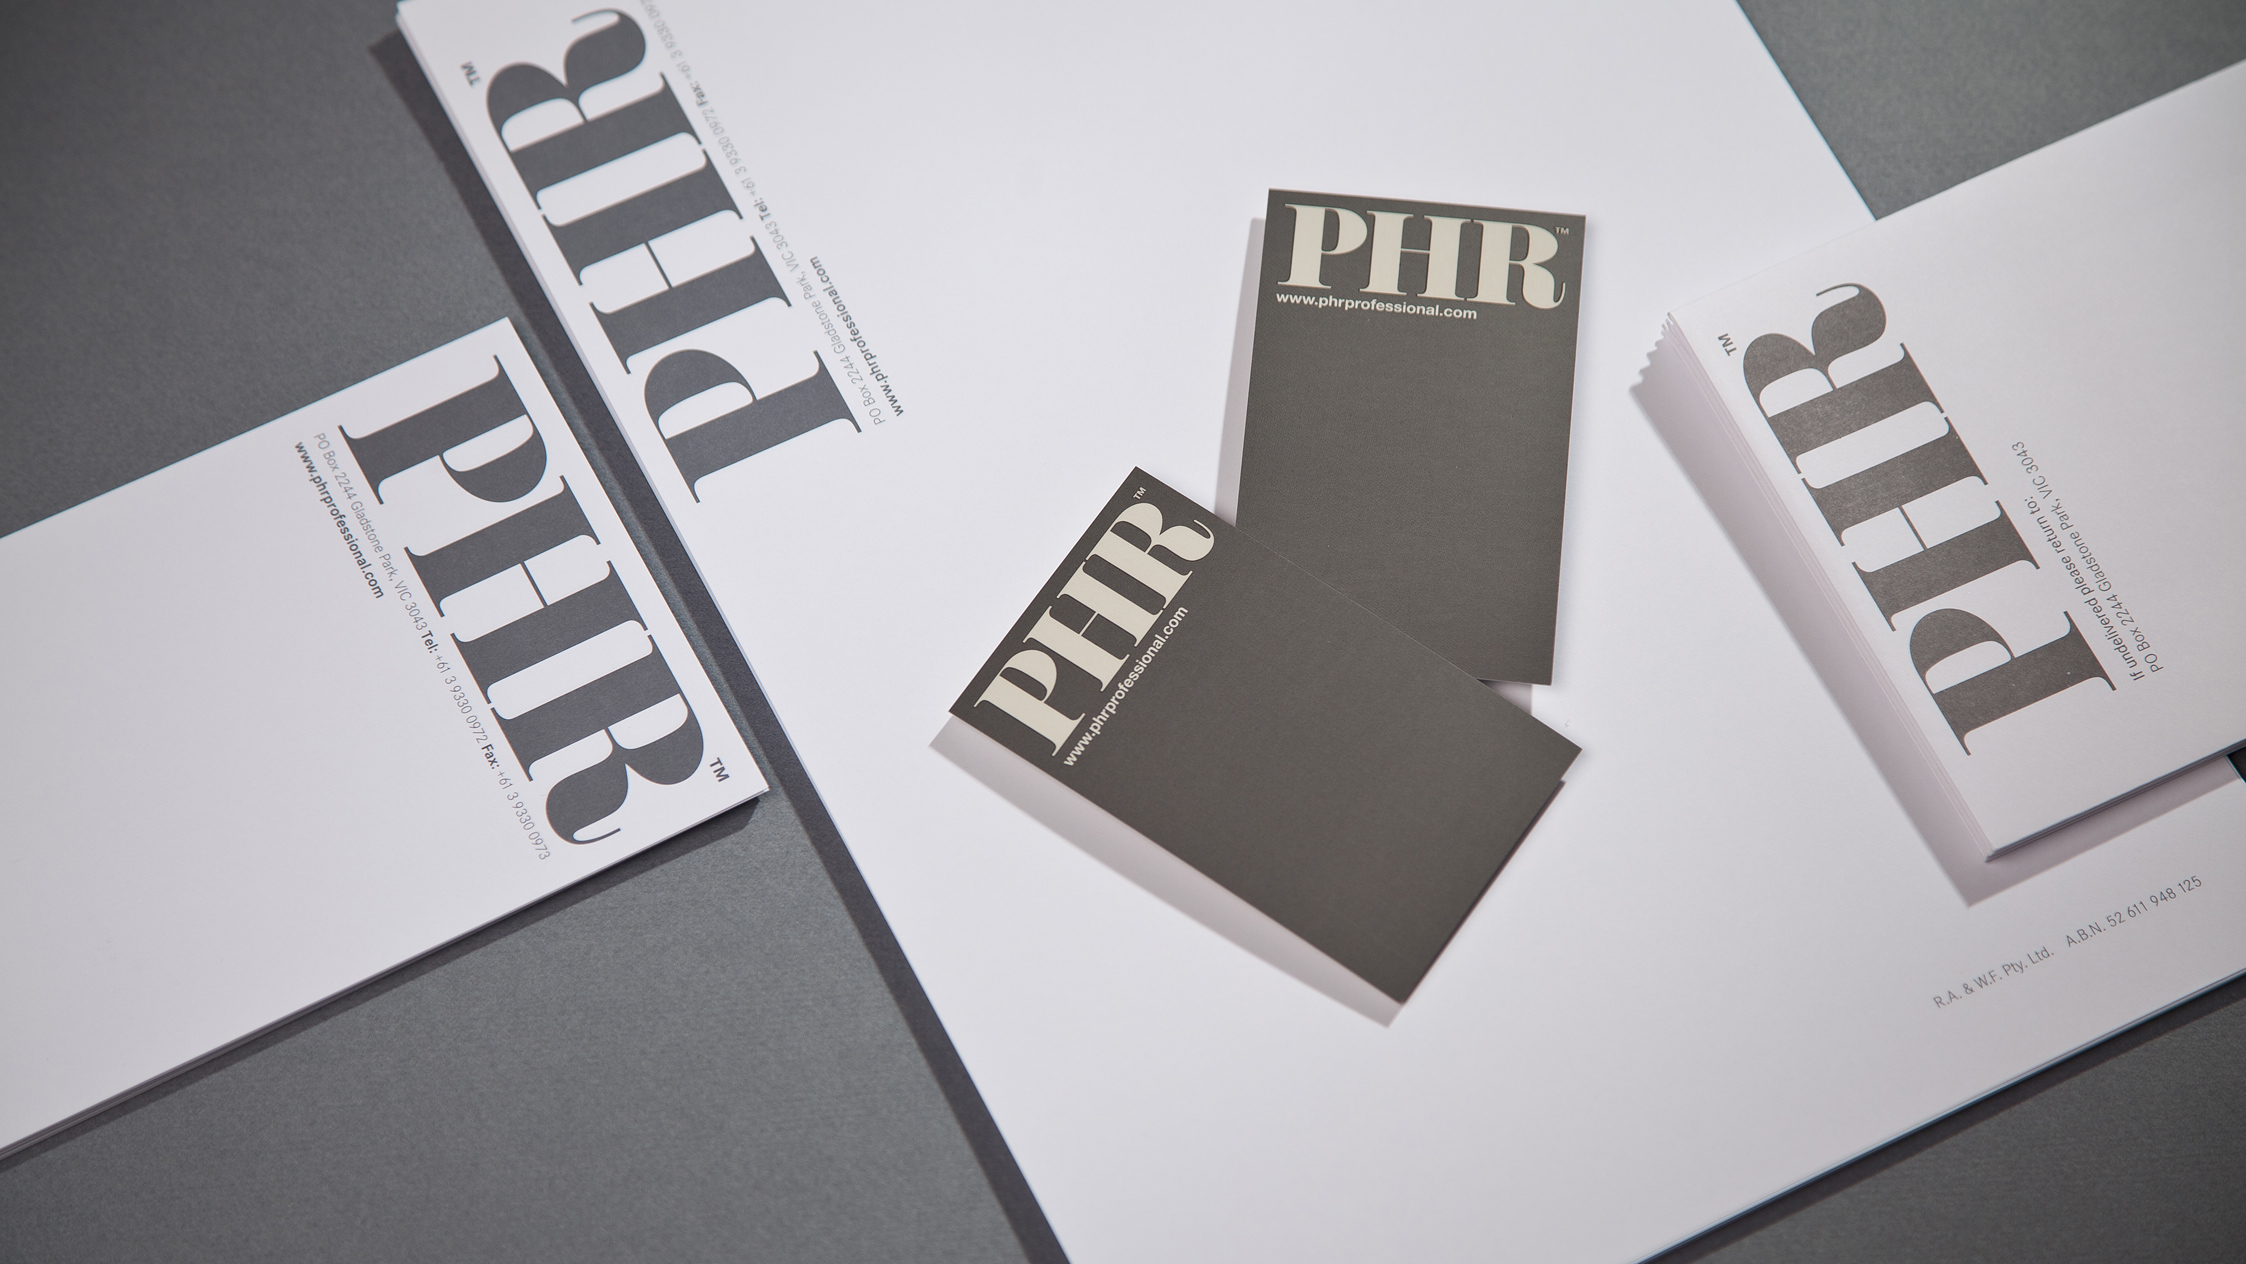 PHR Collateral